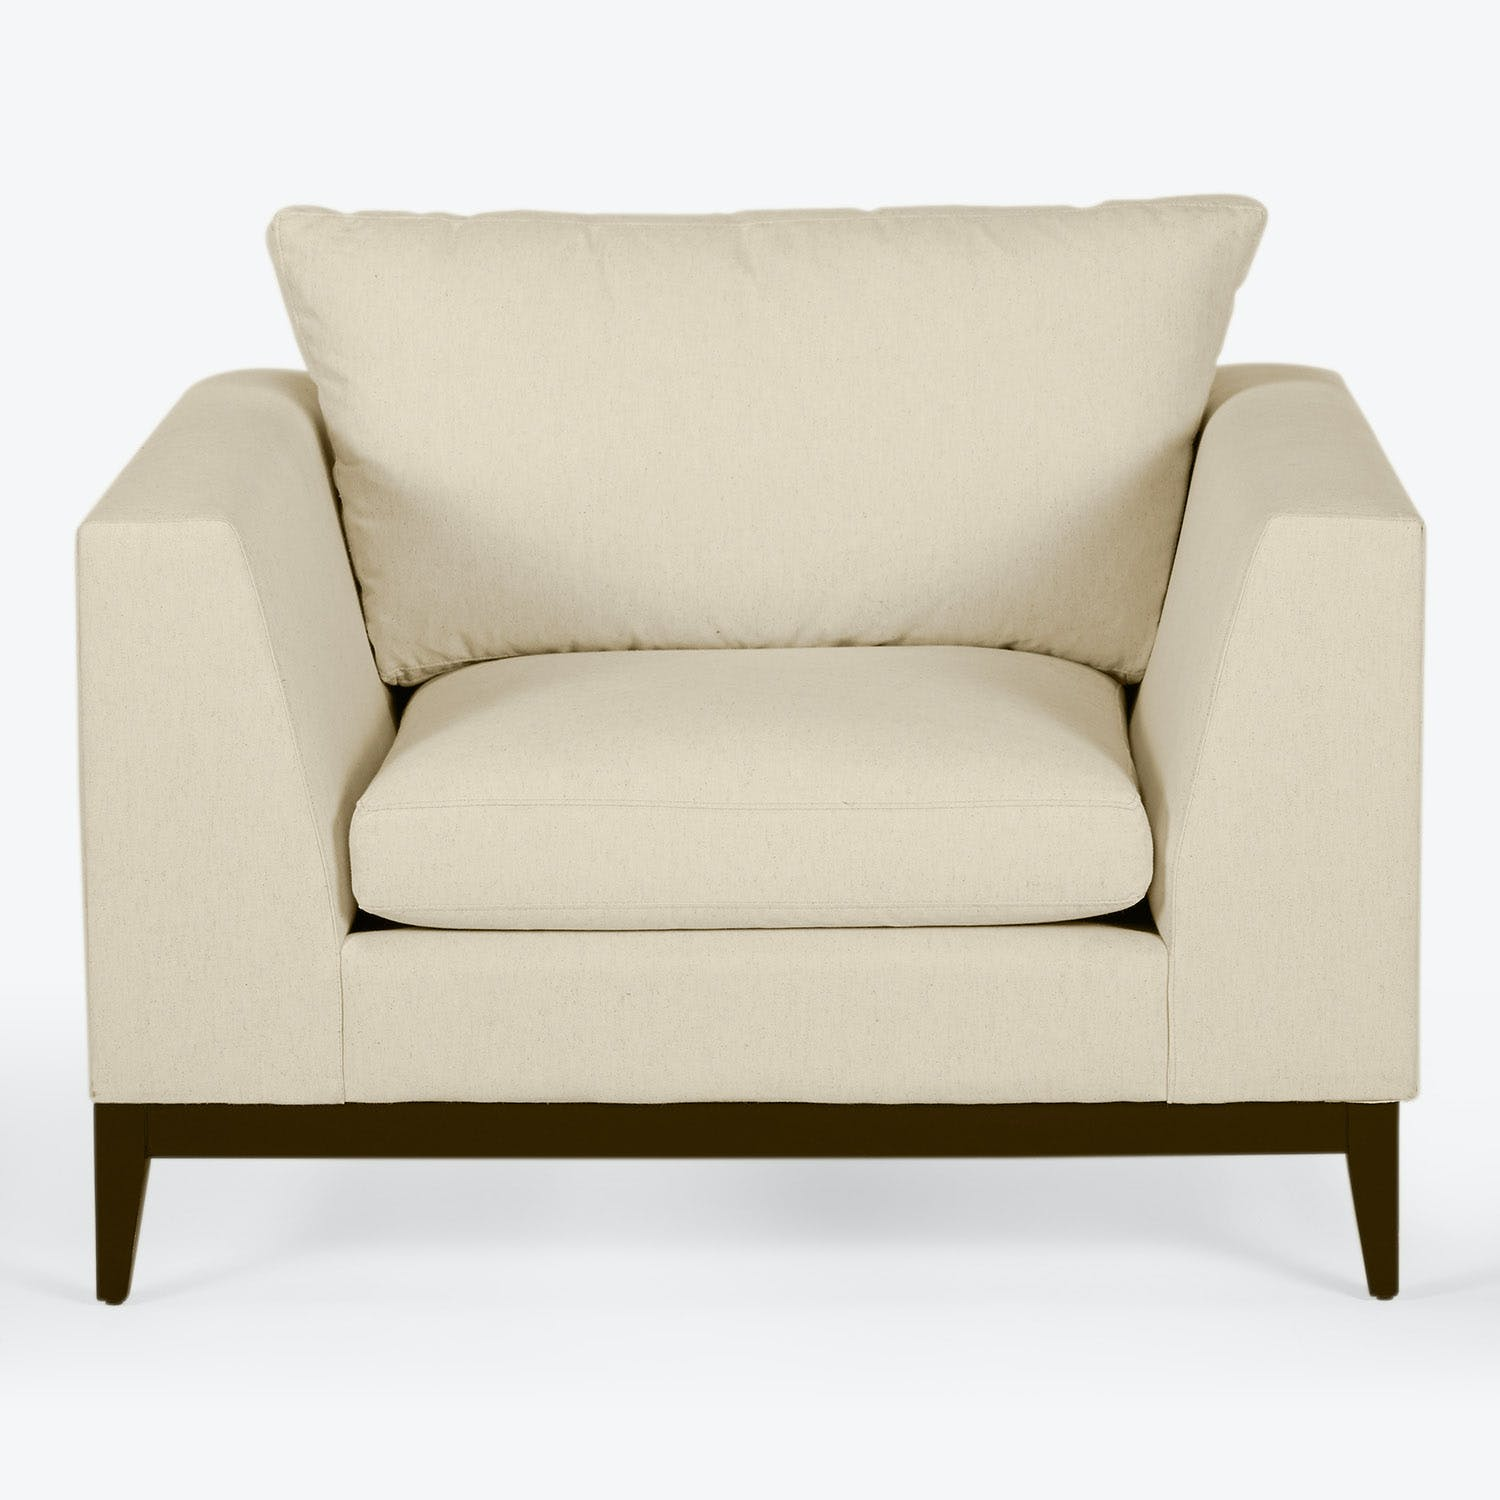 Product Image - Nomad Chair